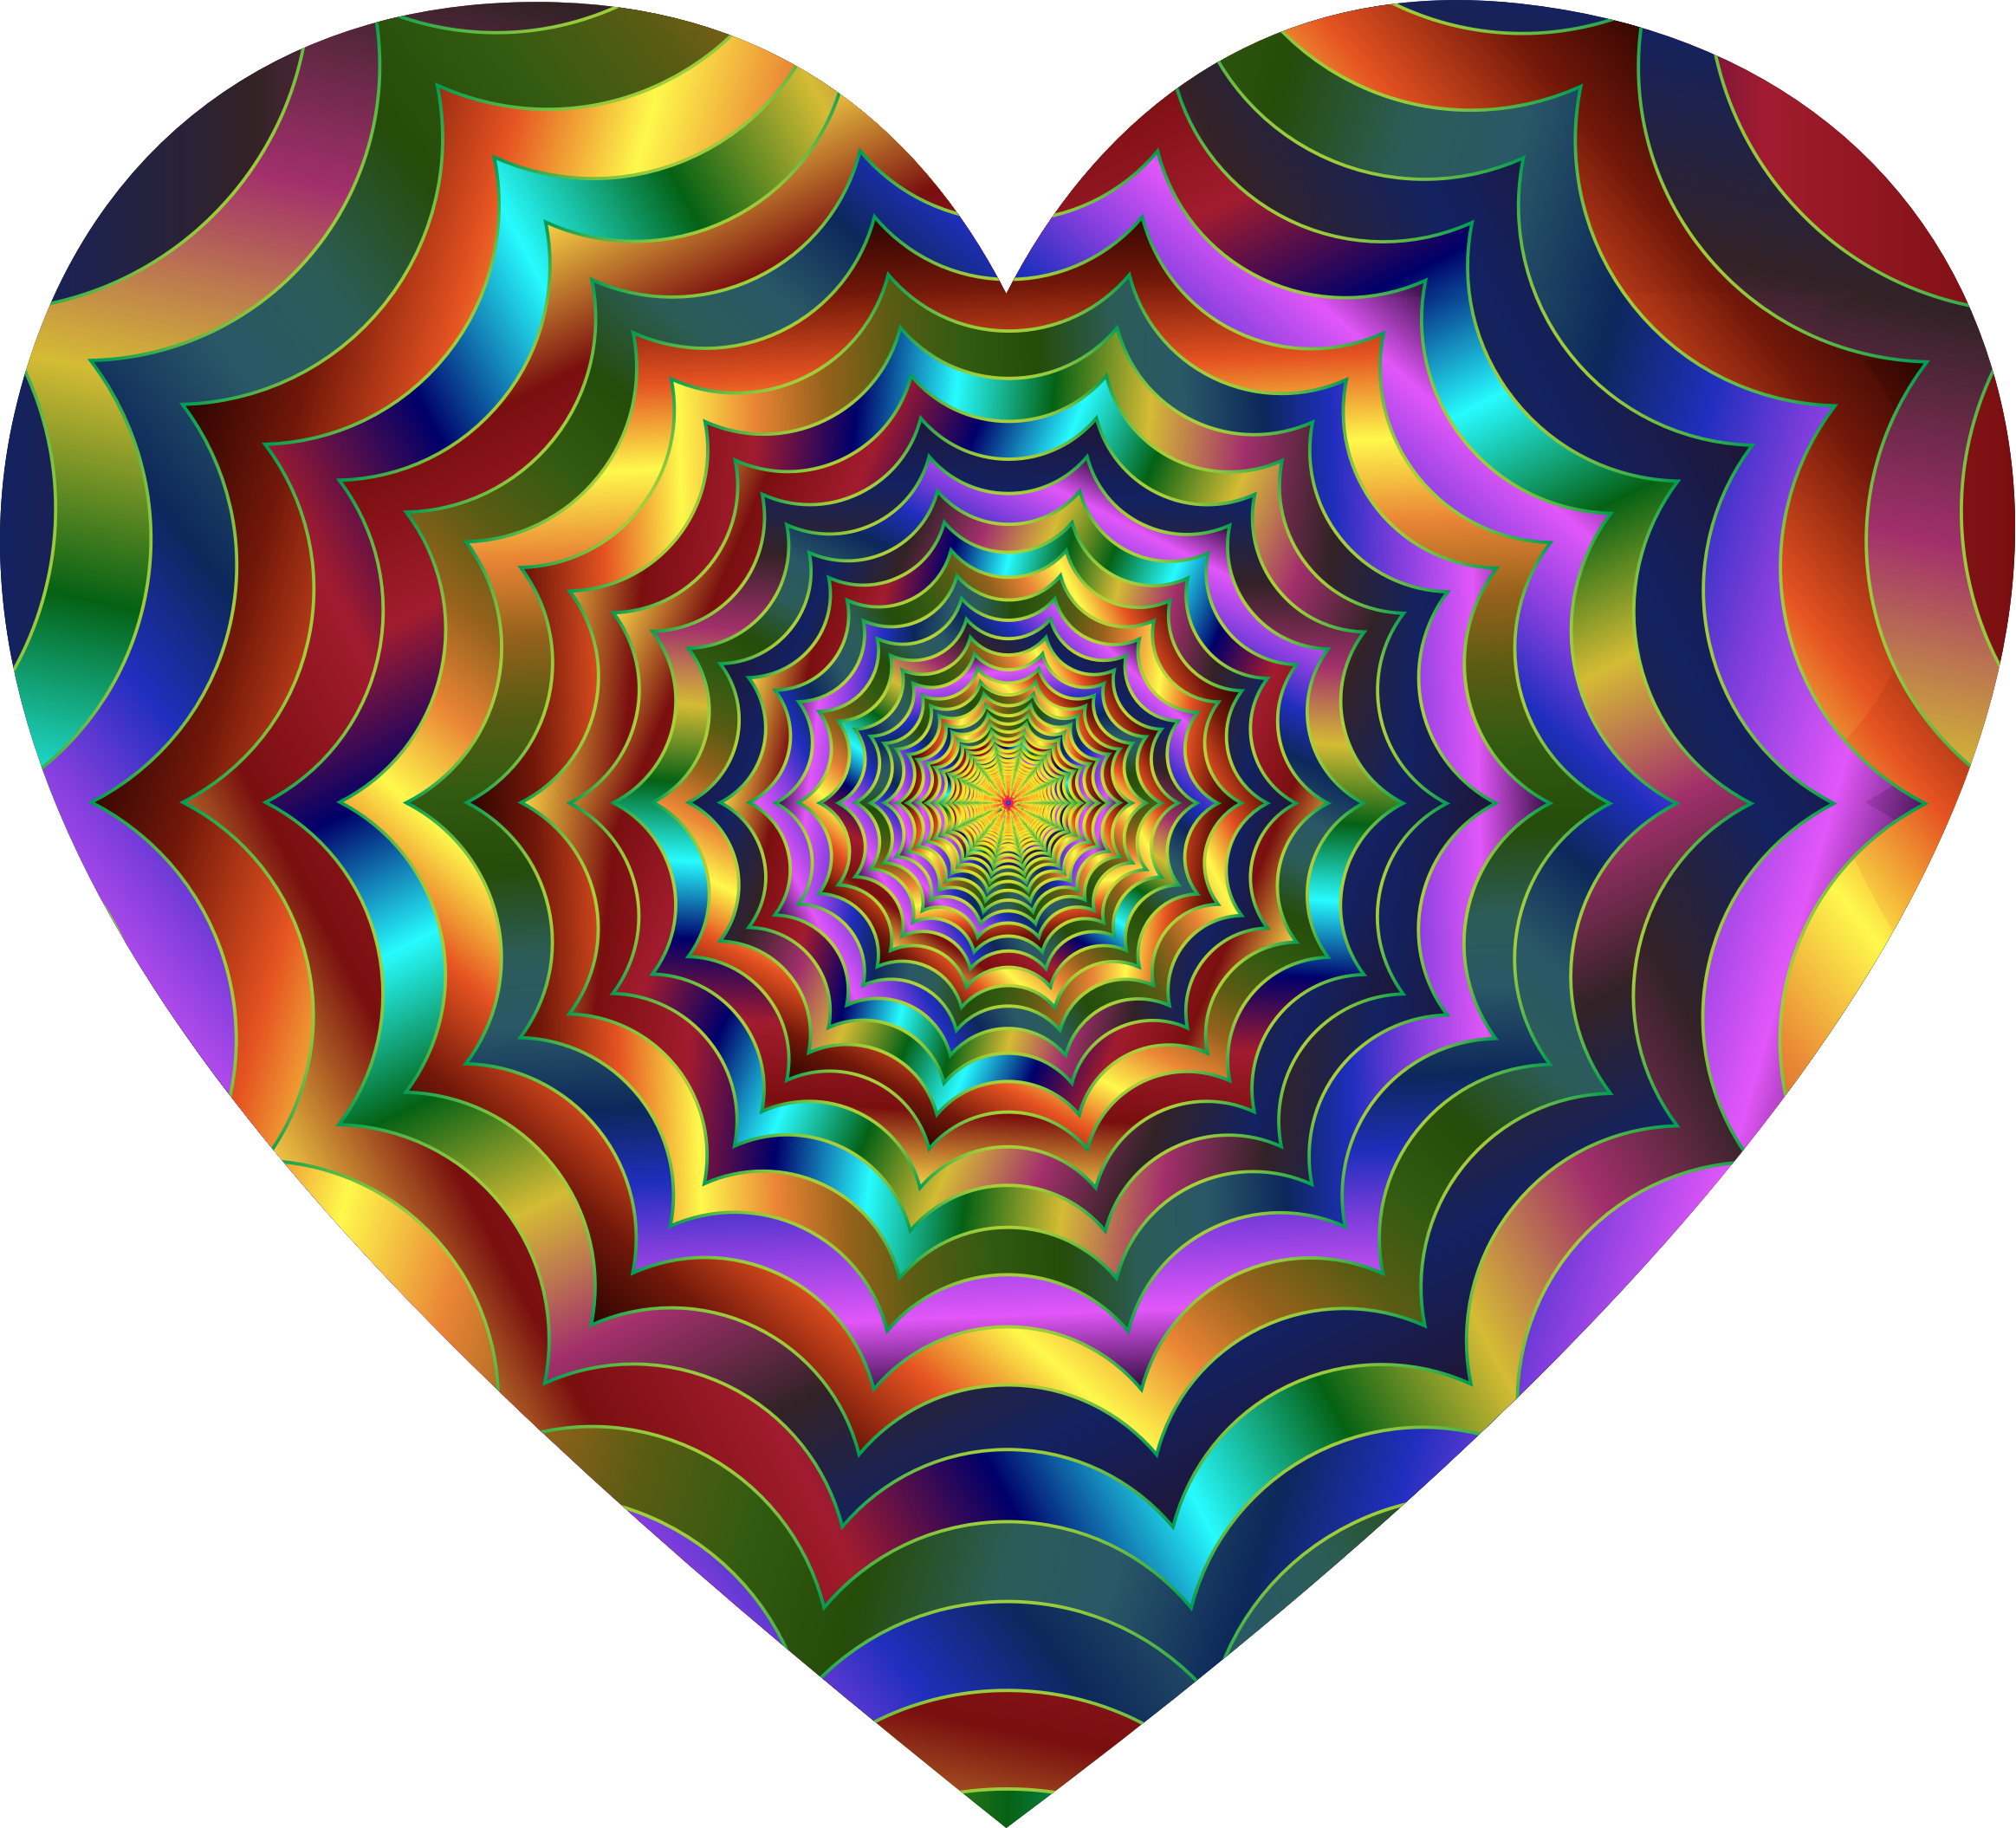 Prismatic Waves Heart by GDJ